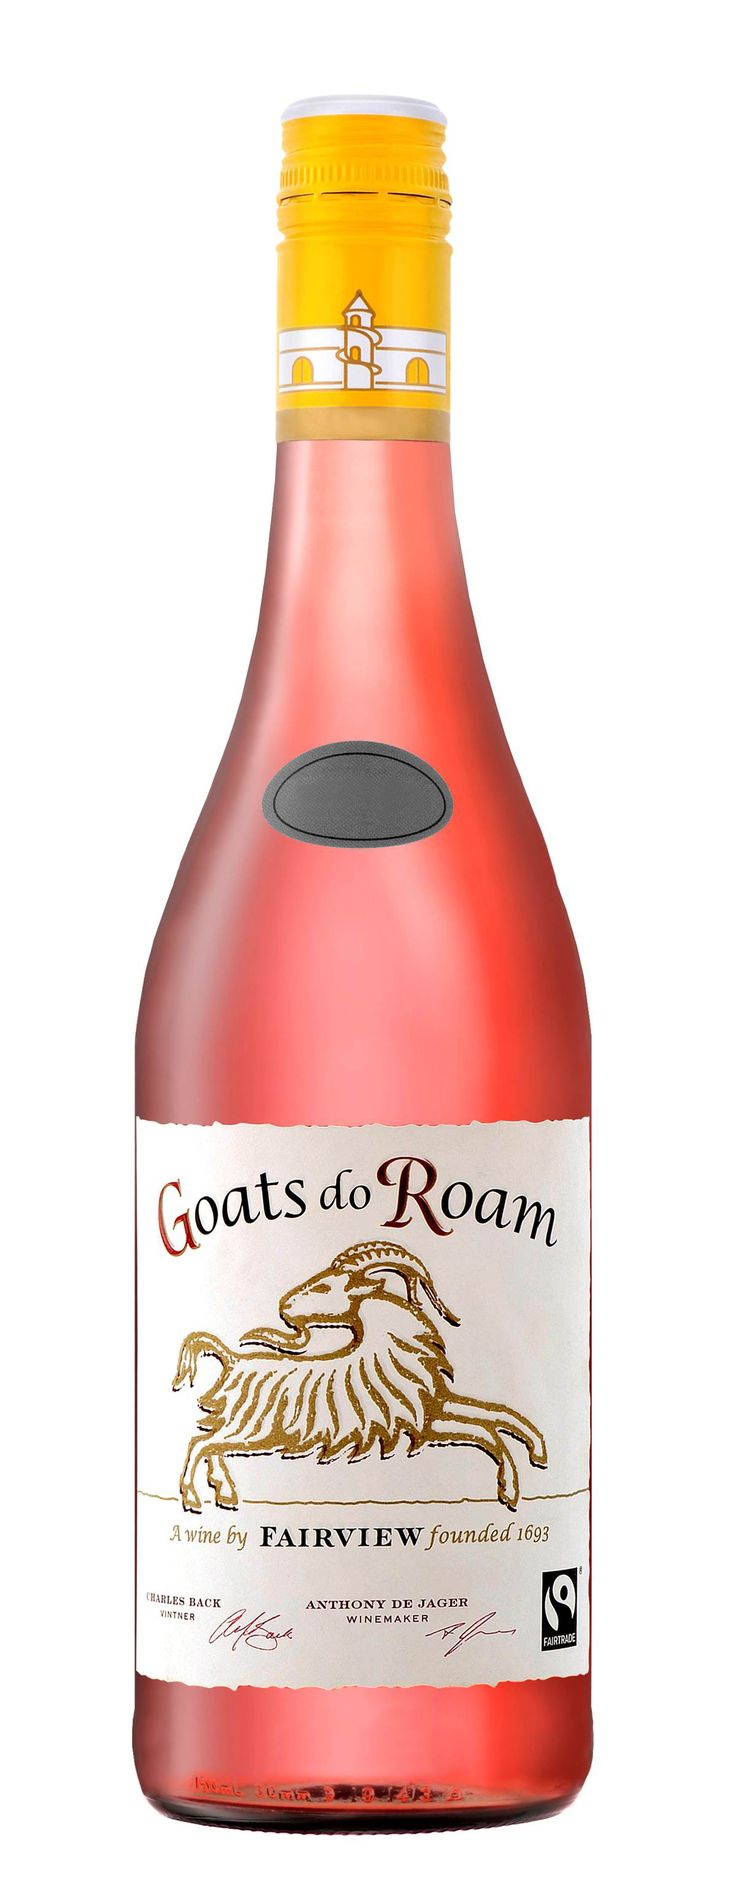 "Rosé: Not Just For Summer Sipping - the Best Rosé under $10 - Food and Wine 2016  Goats do Roam Western Cape Rosé ($9) ""A savory undertone balances the hint of sweetness in this fruit-driven rosé made with mostly Shiraz and Grenache."""